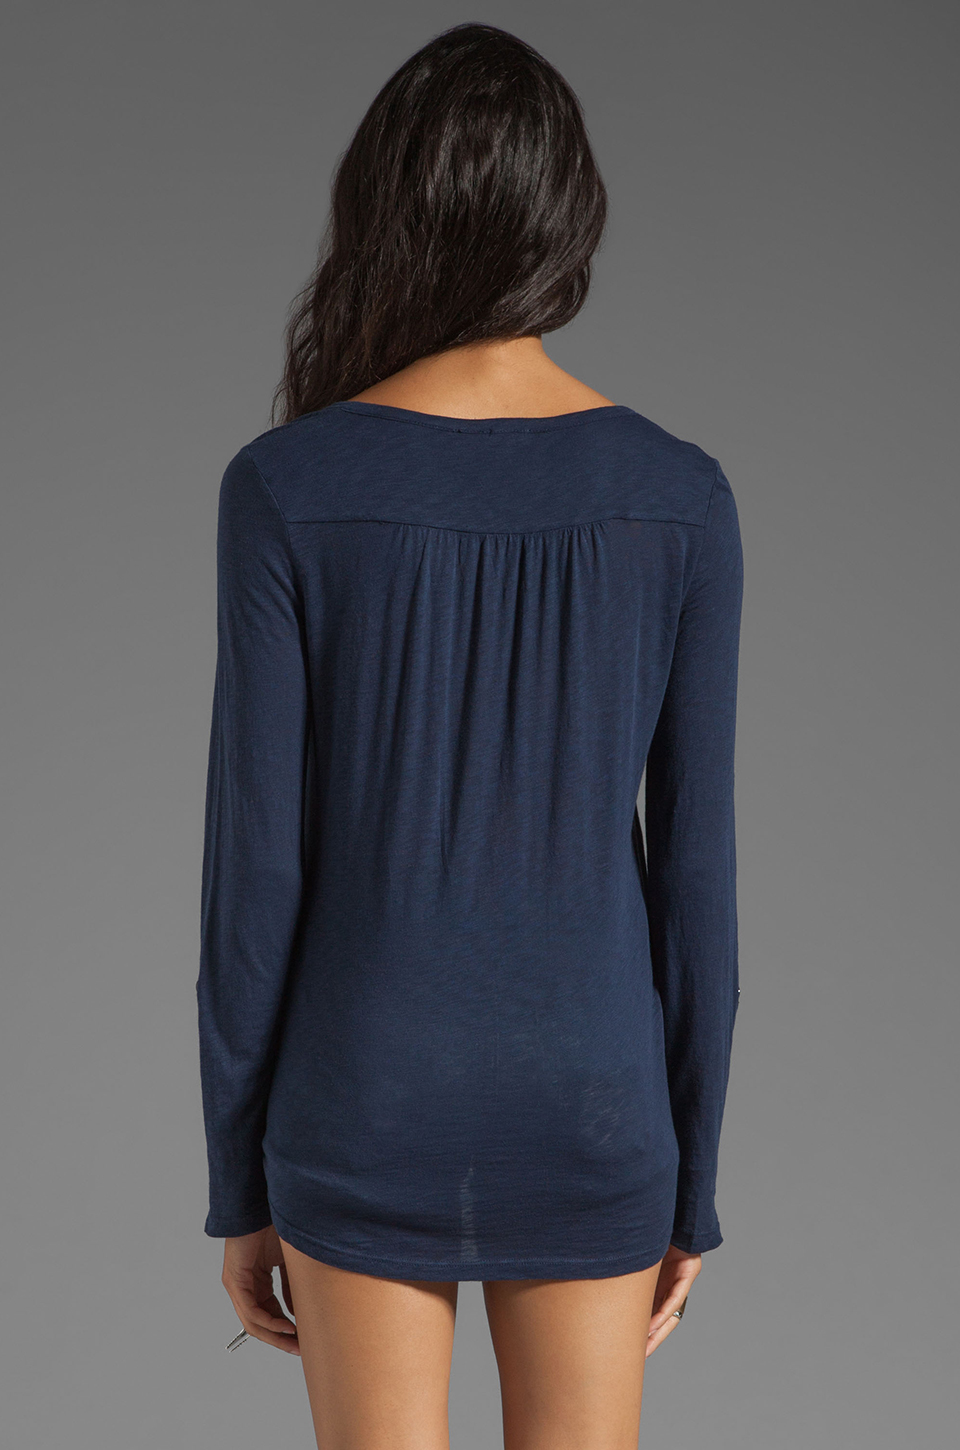 Splendid Very Light Jersey Henley in Navy